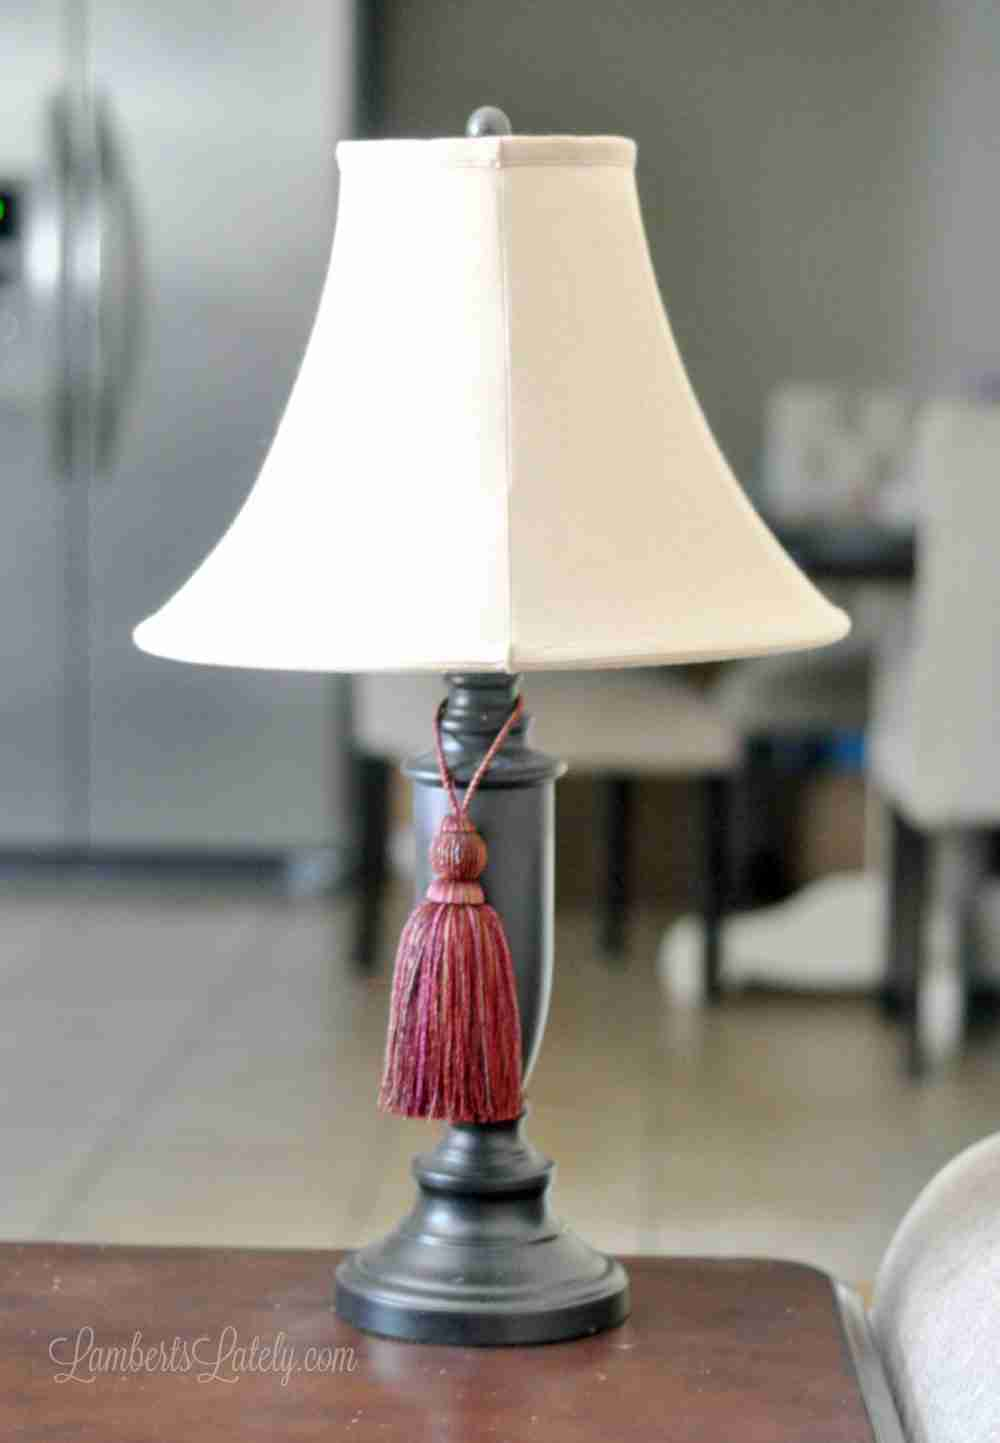 Drab To Fab A Diy Glass Finish Lamp Base Makeover Lamberts Lately